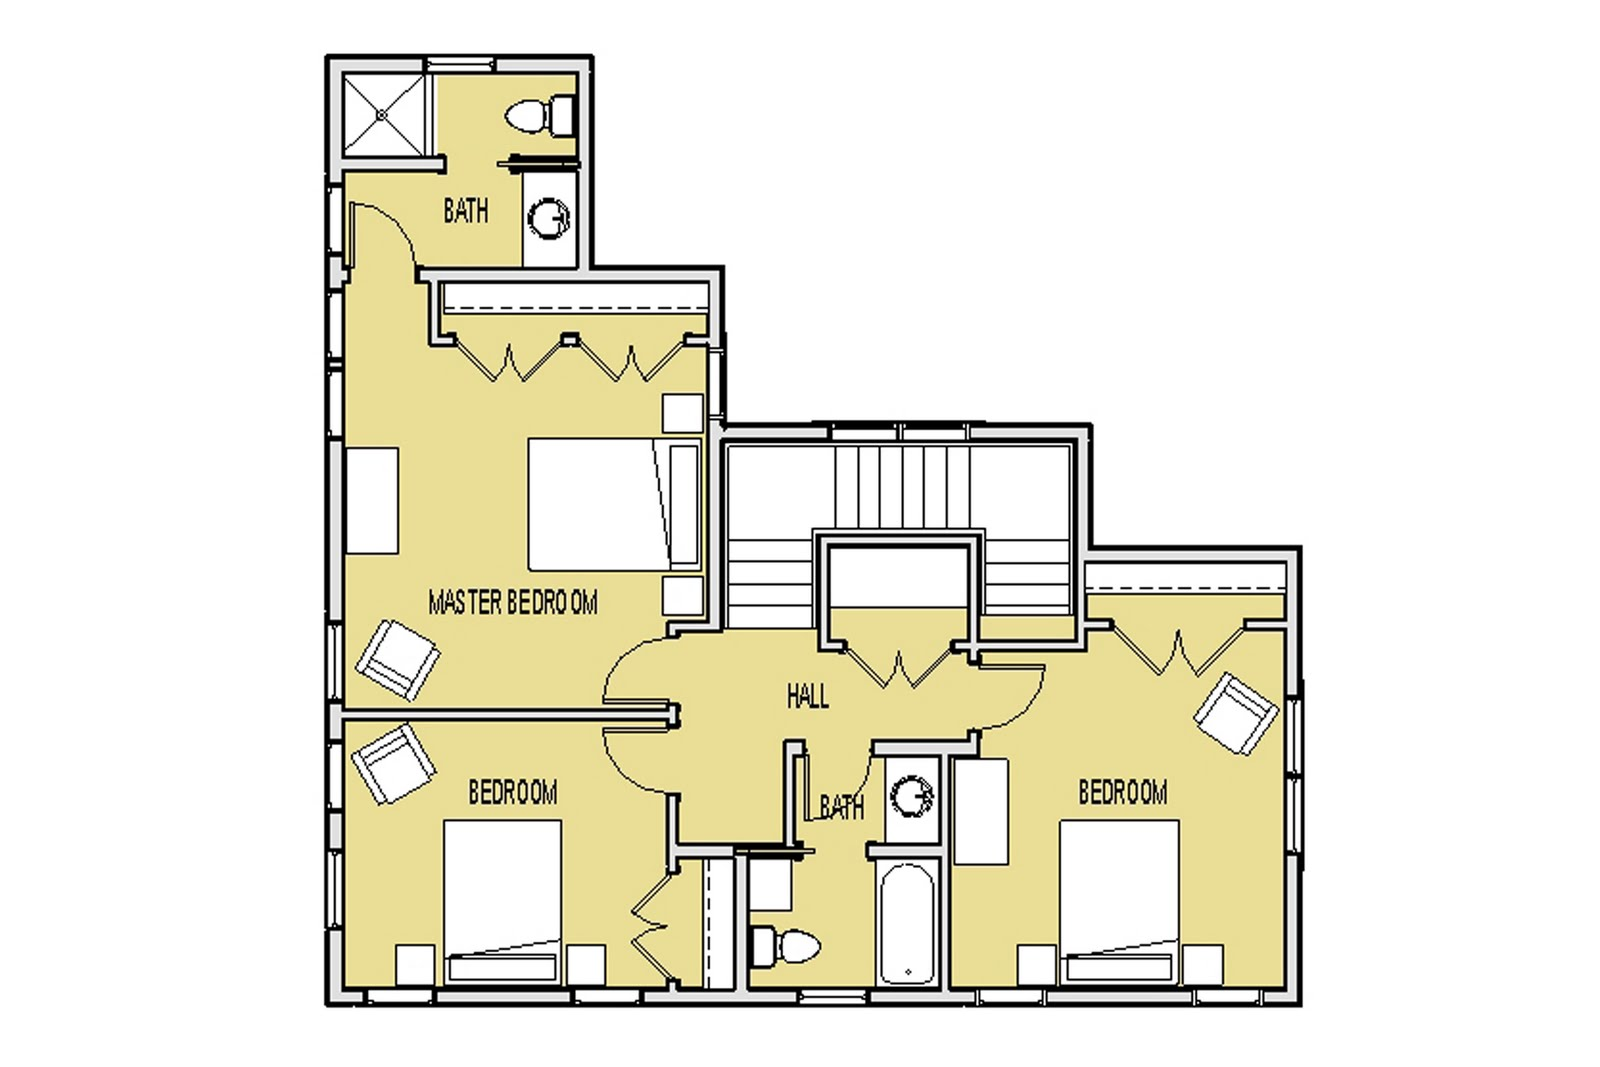 Upper Level Floor Plan - Three bedrooms with two baths.